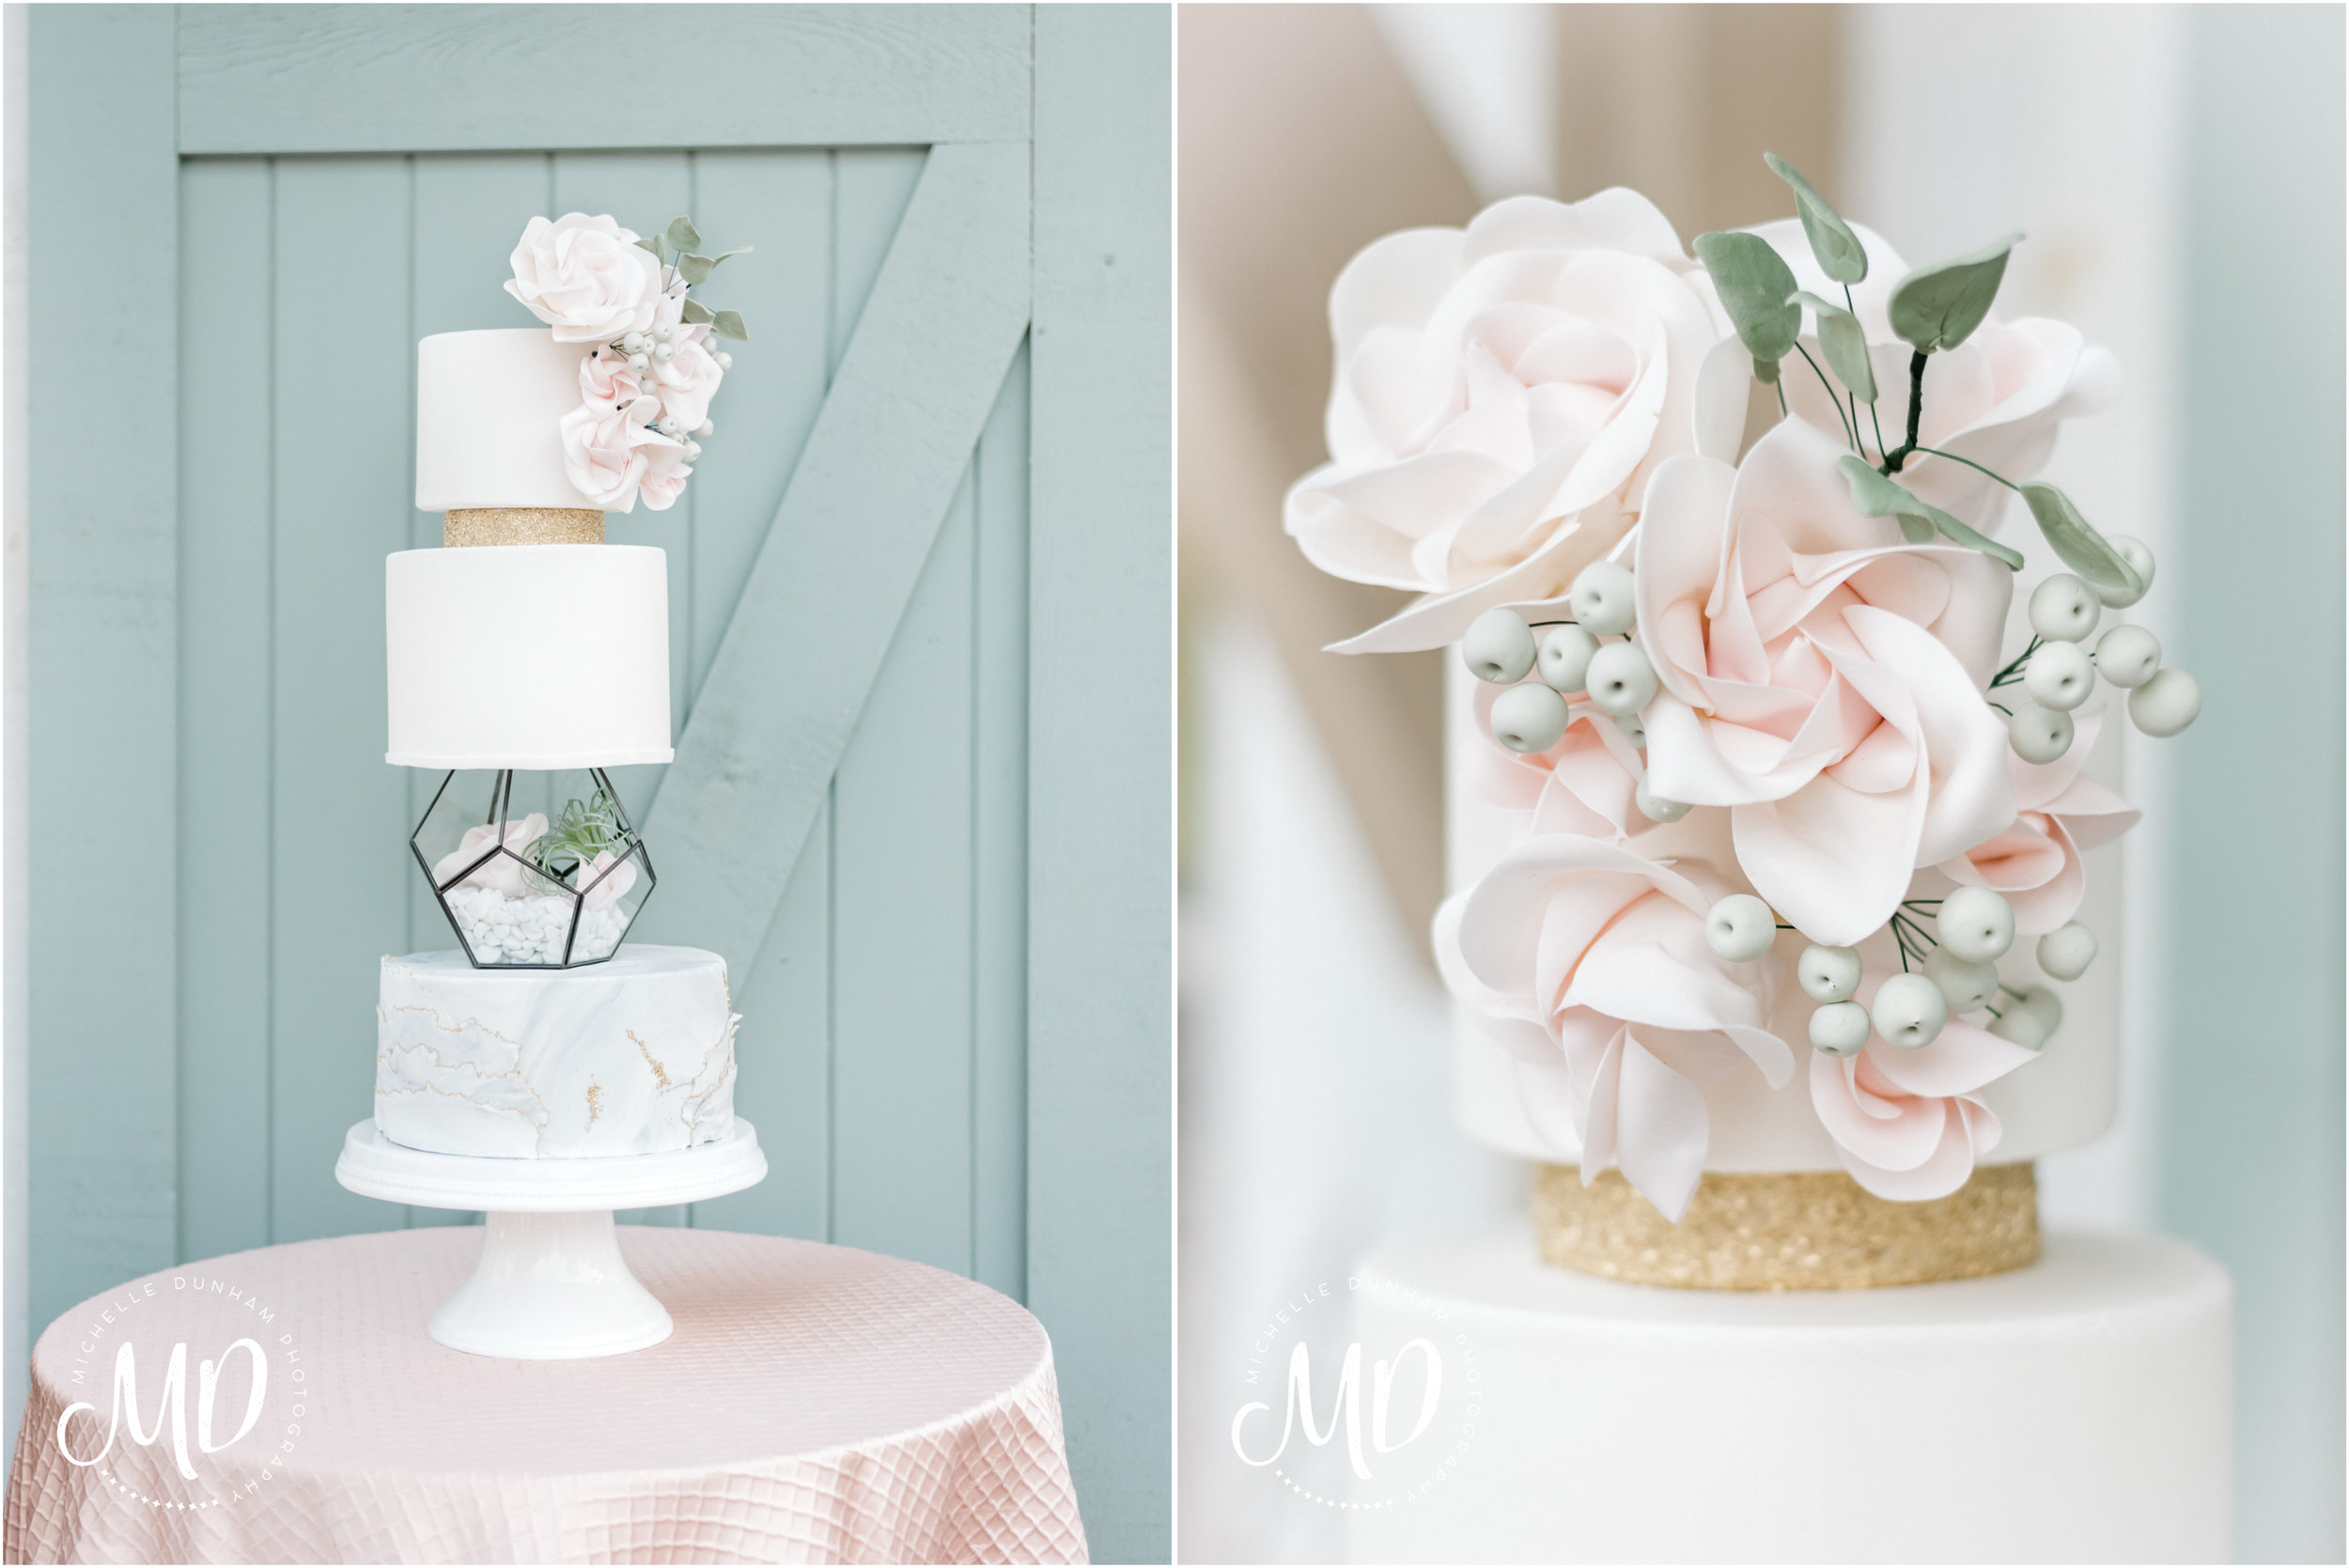 briar_barn_wedding_cake_michelle_dunham_photography.jpg